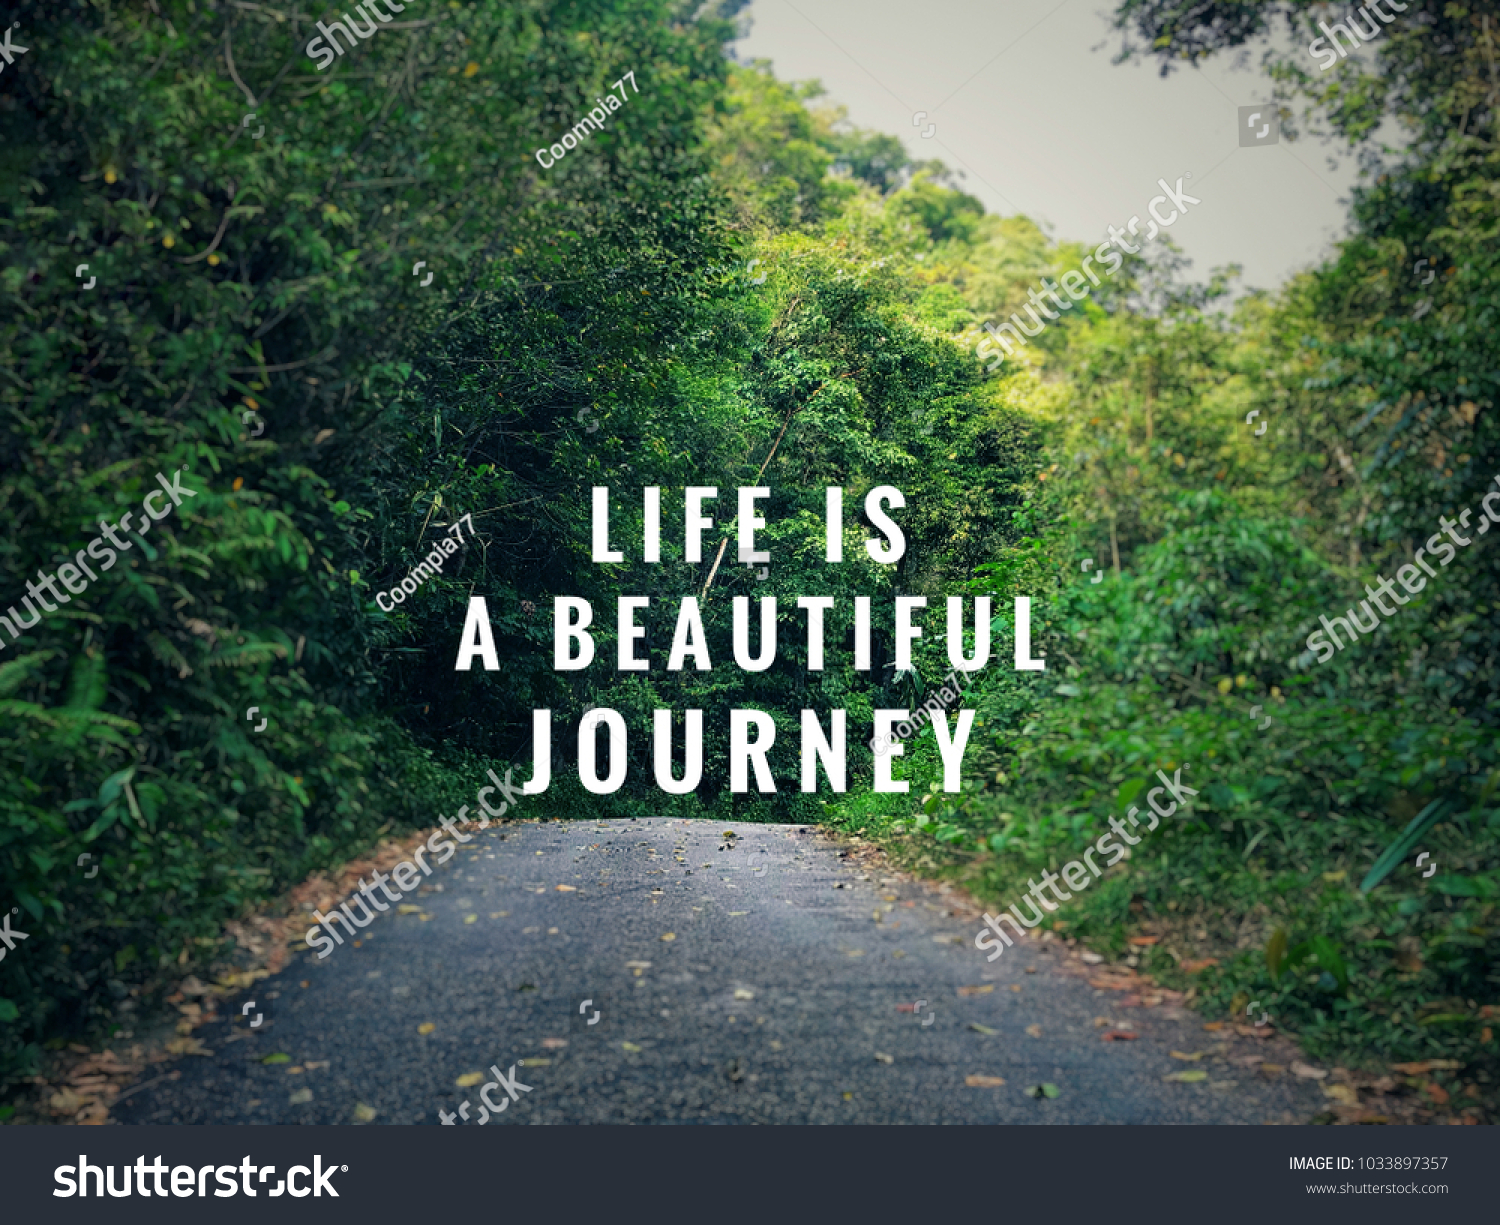 Motivational And Inspirational Quotes   Life Is A Beautiful Journey. With  Vintage Styled Background.